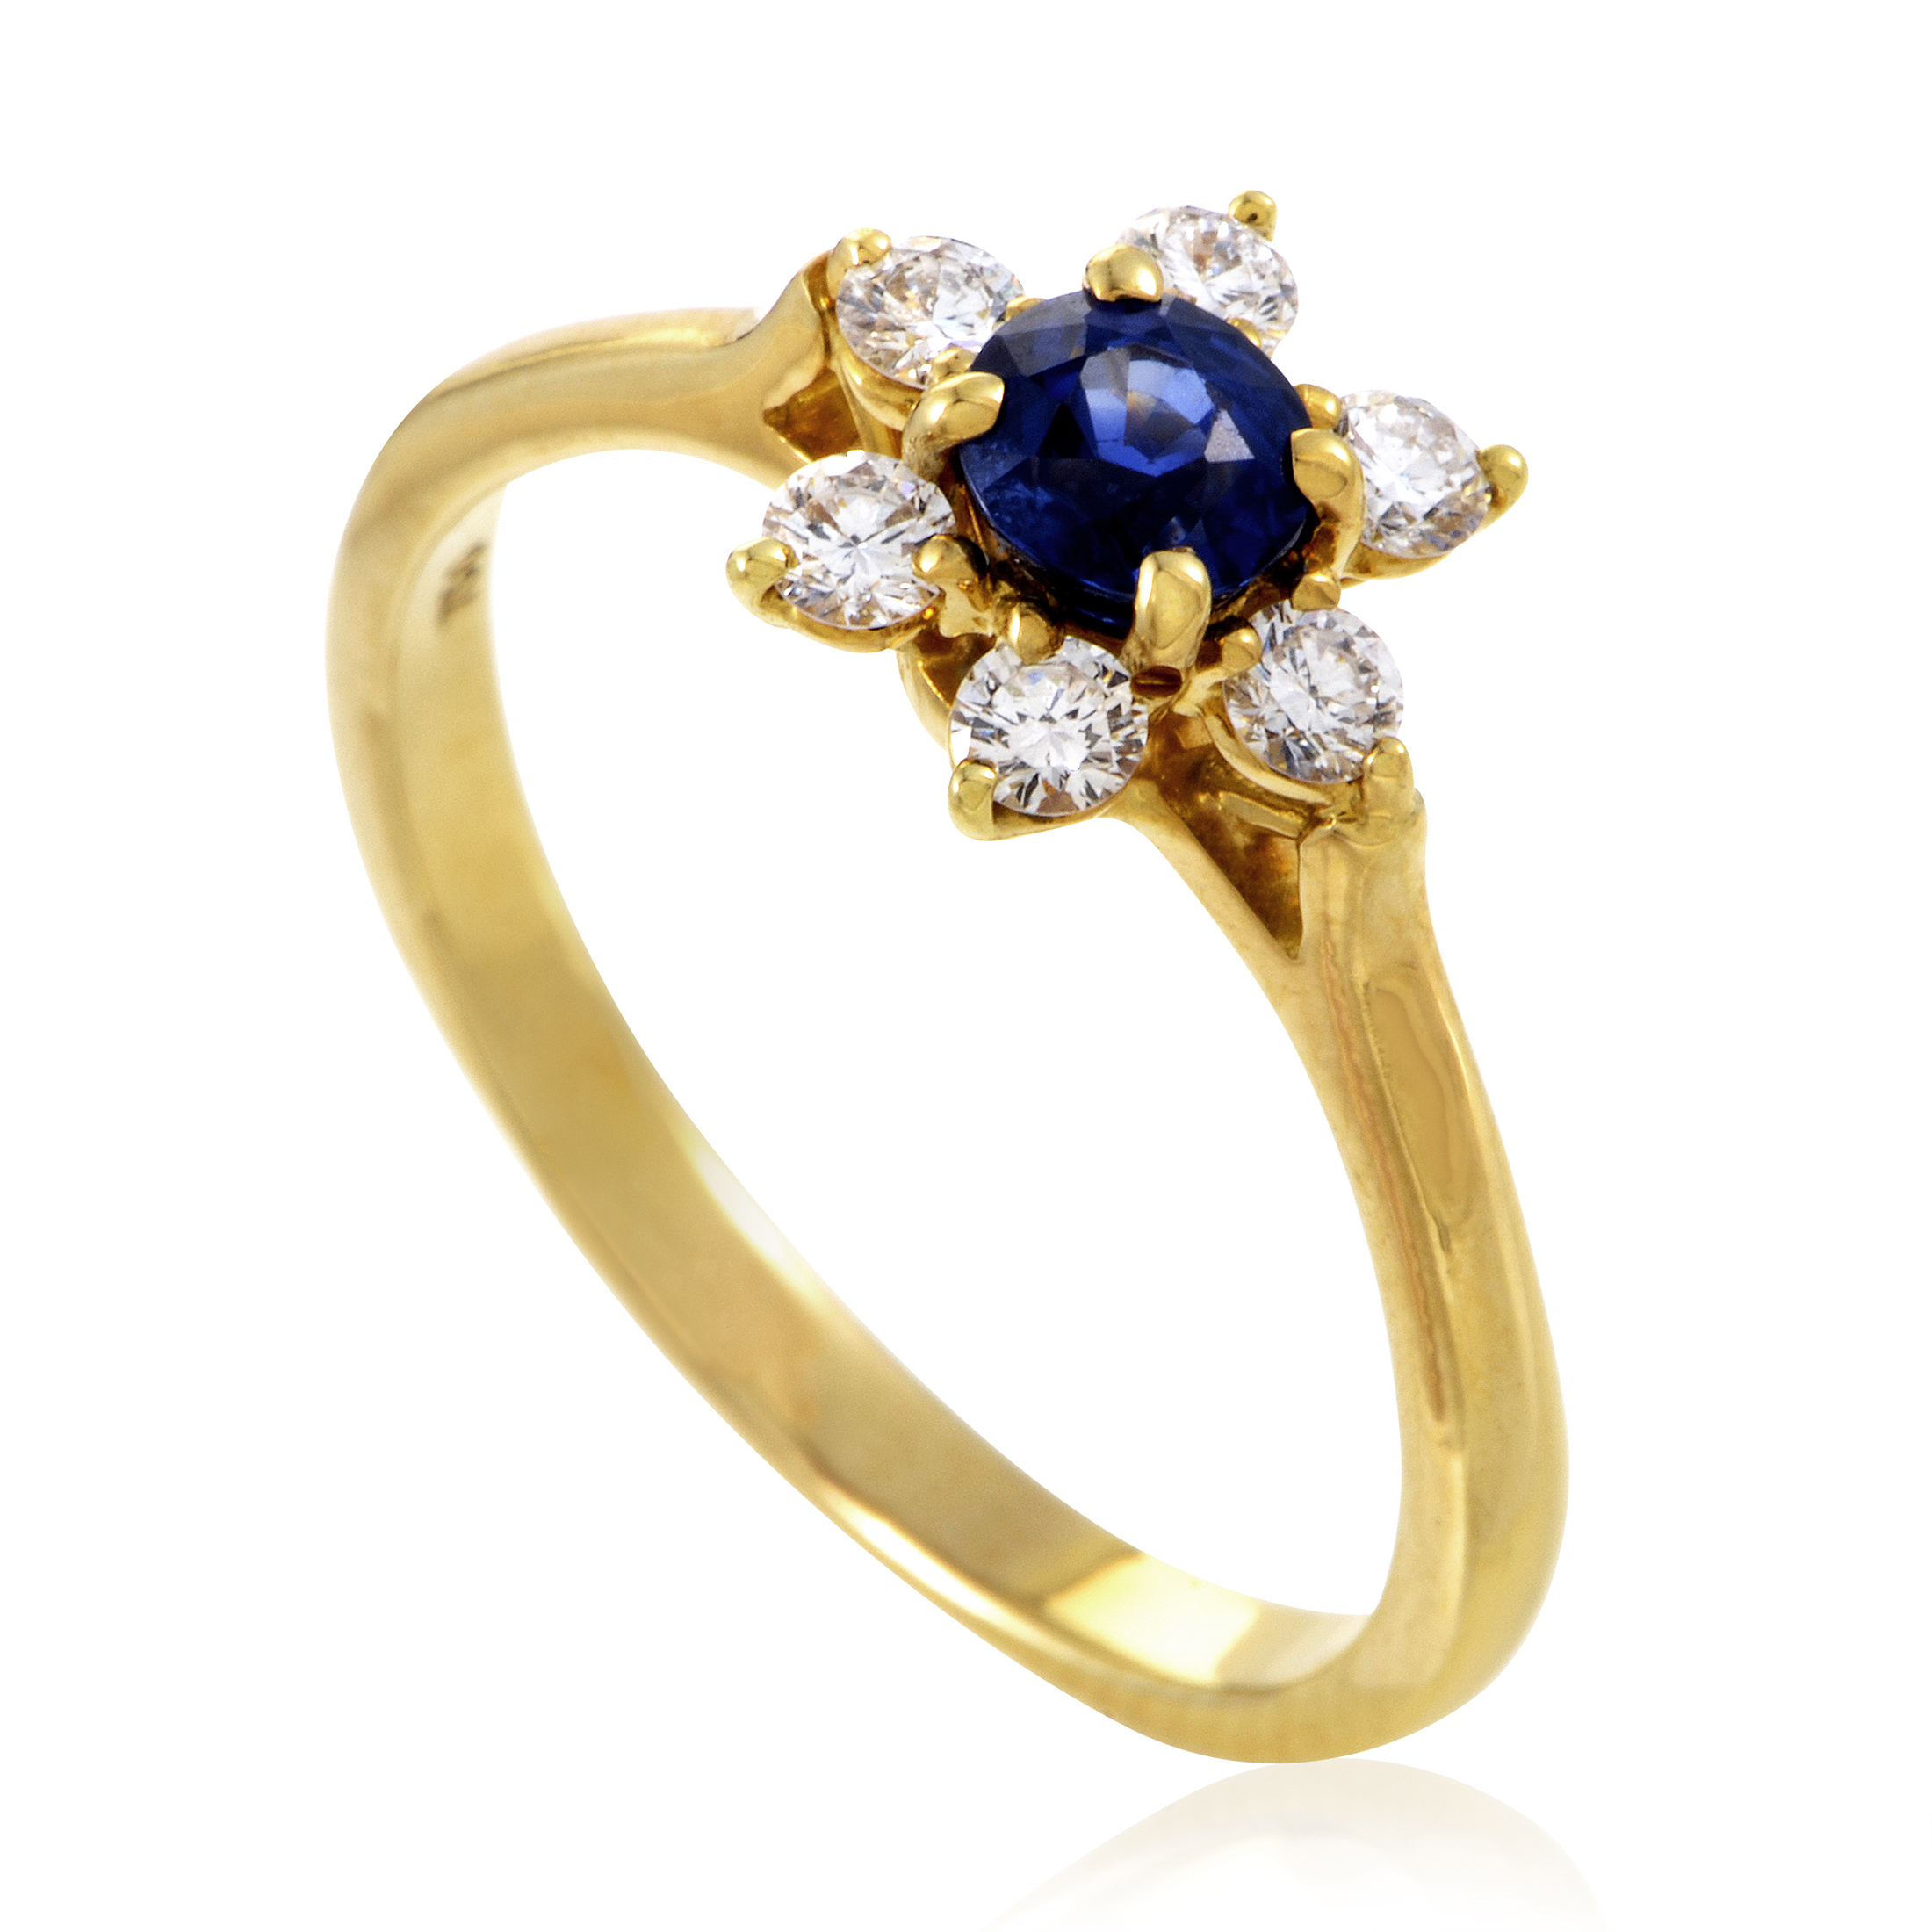 Tiffany & Co. Women's 18K Yellow Gold Diamond & Sapphire Flower Ring